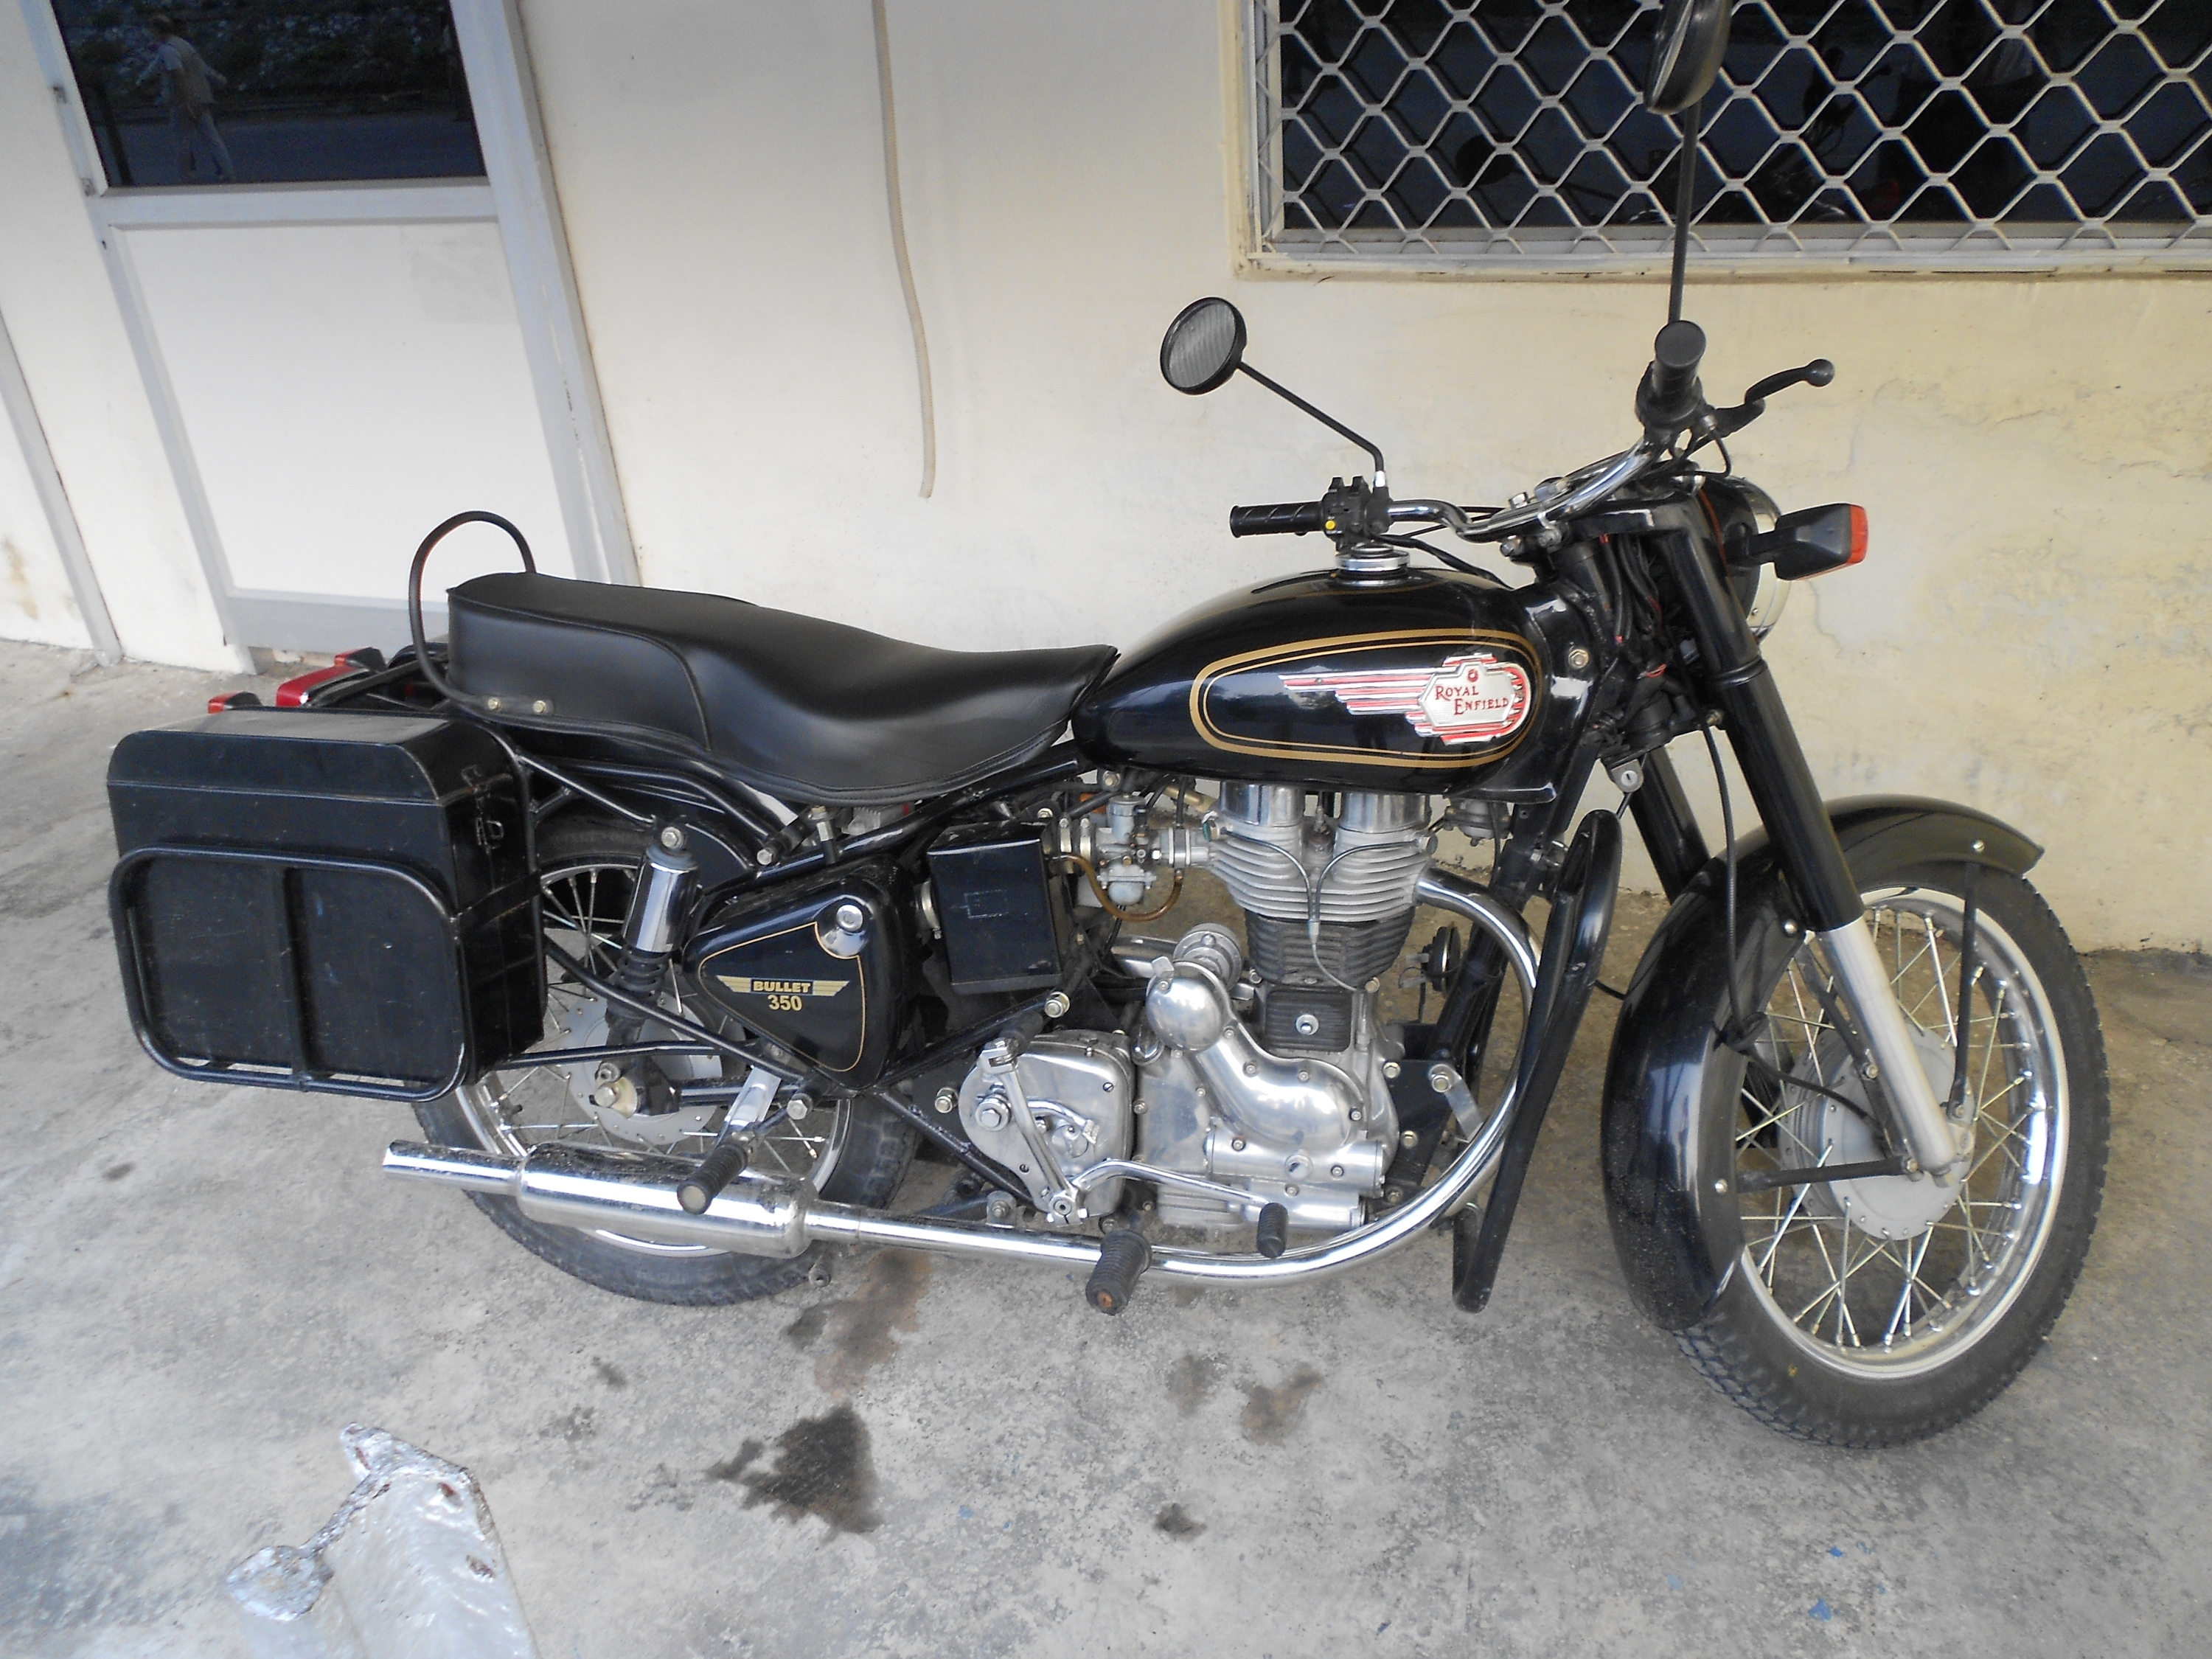 Royal Enfield Bullet 500 Army 2002 images #123420